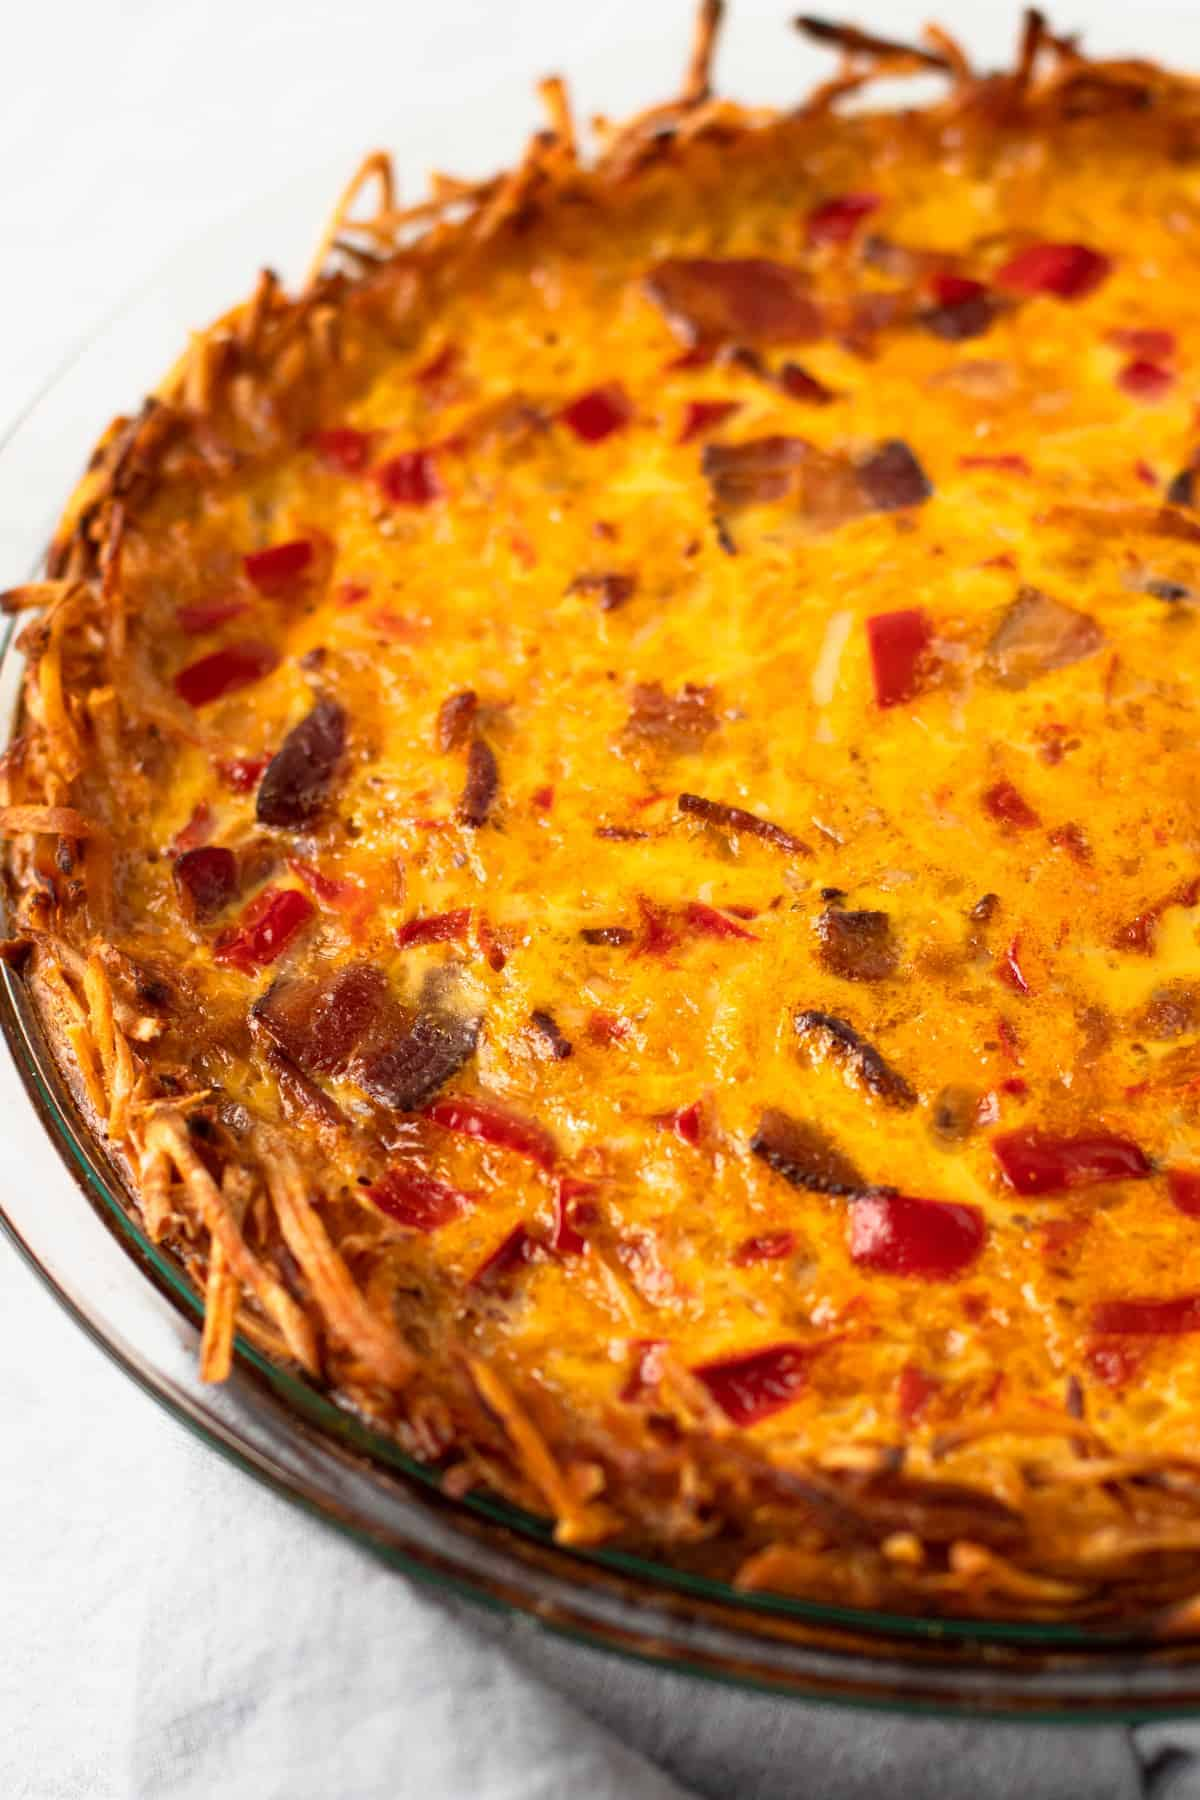 A baked breakfast pie.